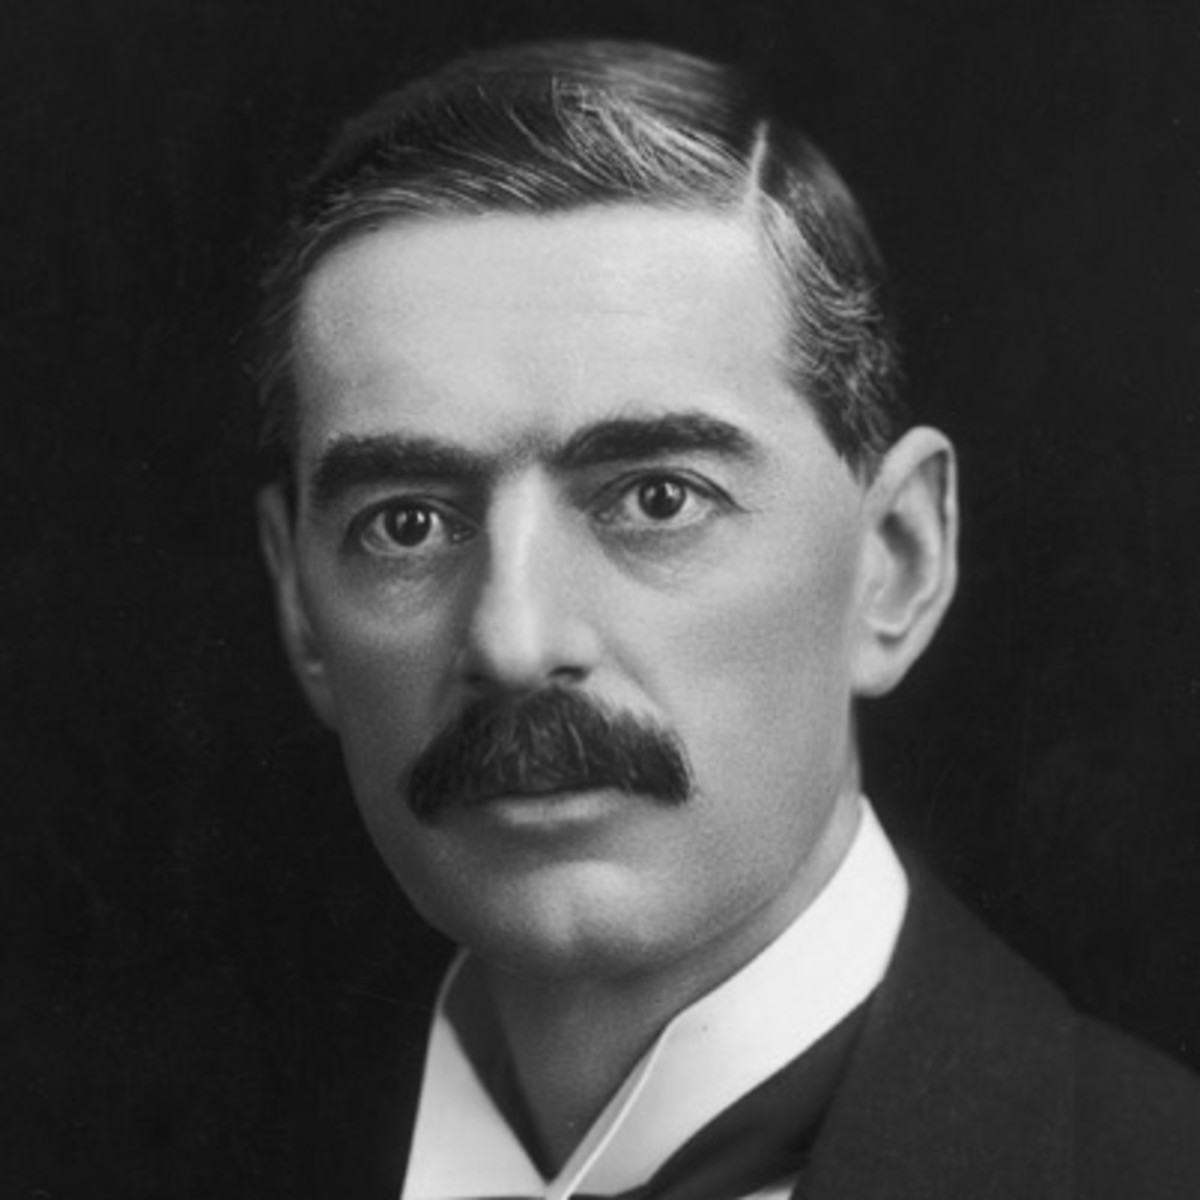 how did neville chamberlain die